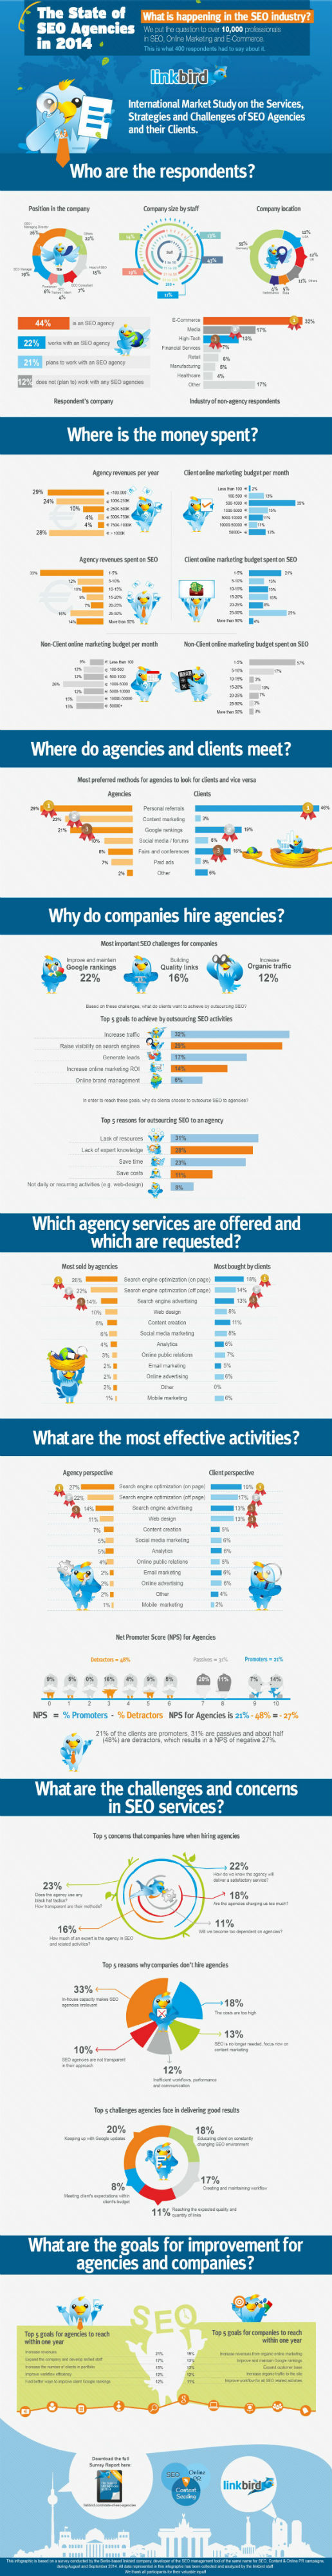 State of SEO Agencies 2014 [Infographic]